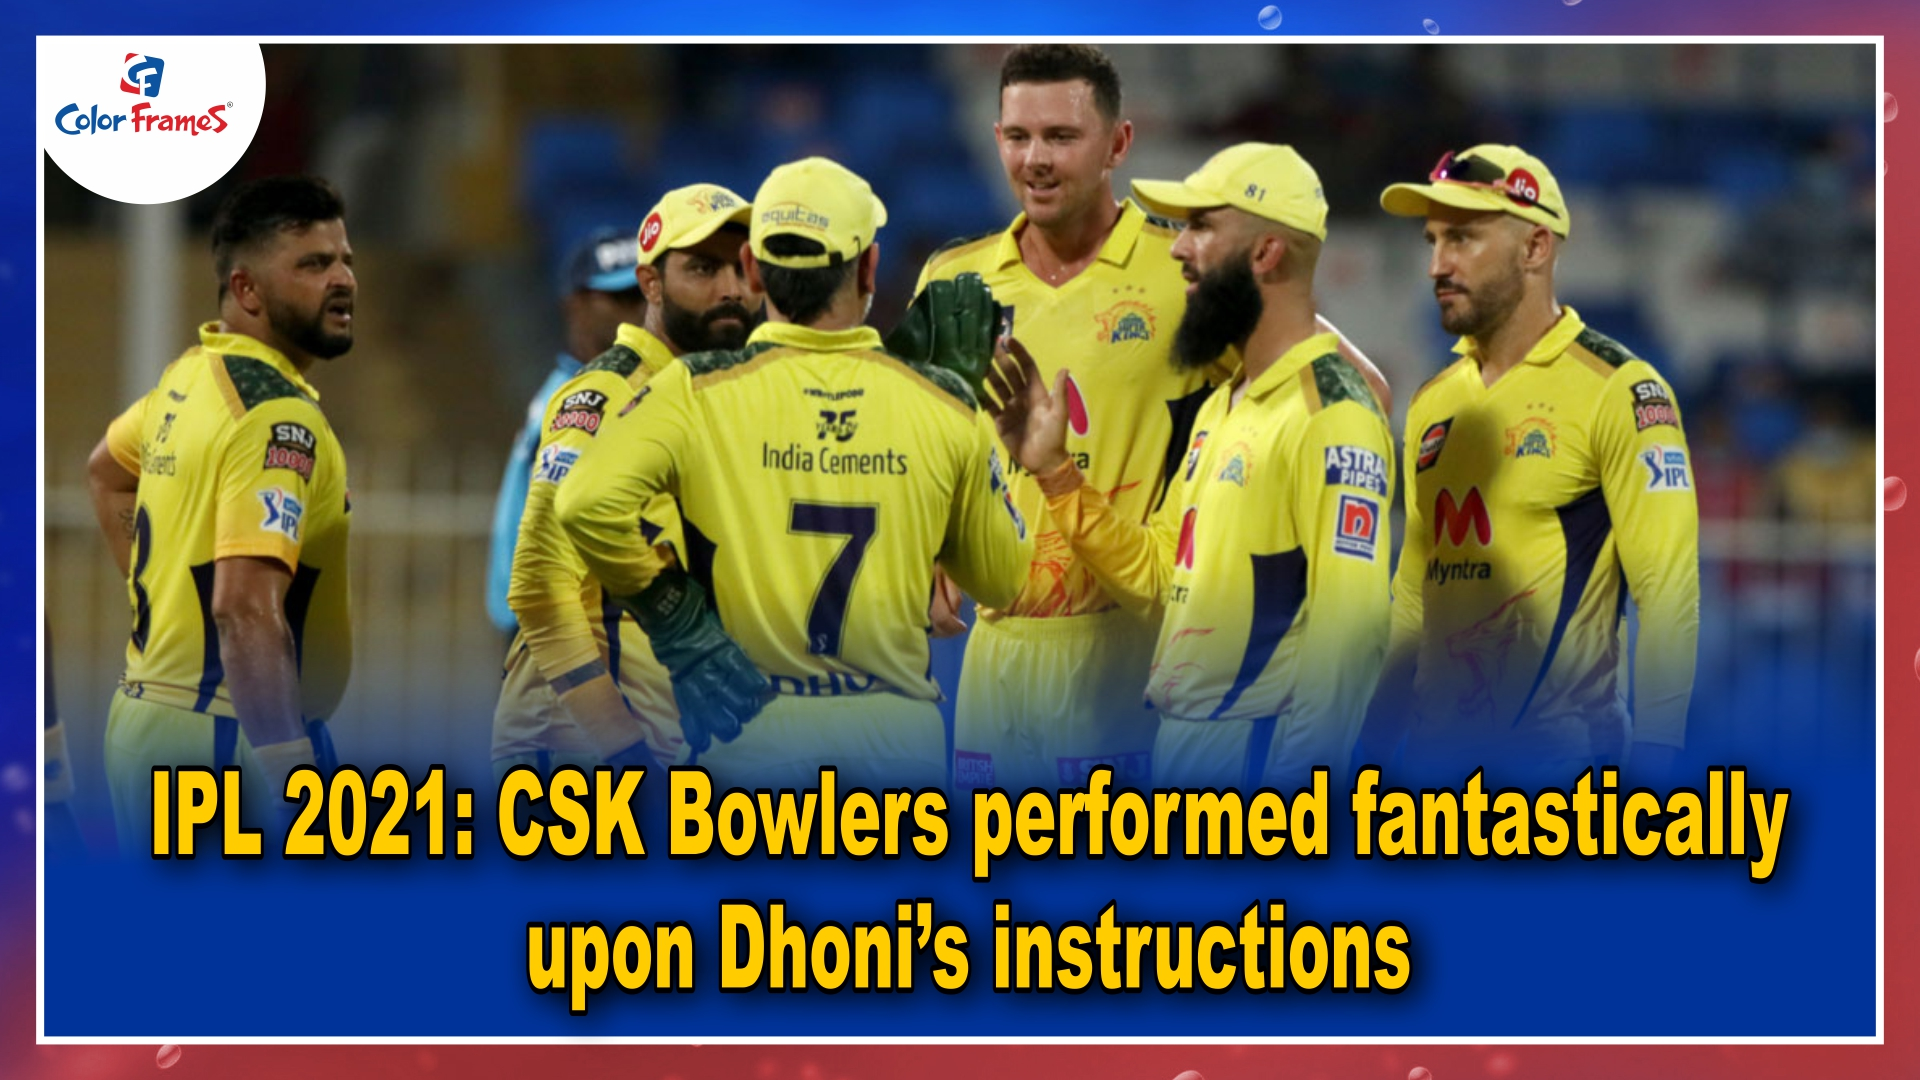 IPL 2021: CSK Bowlers performed fantastically upon Dhoni's instructions